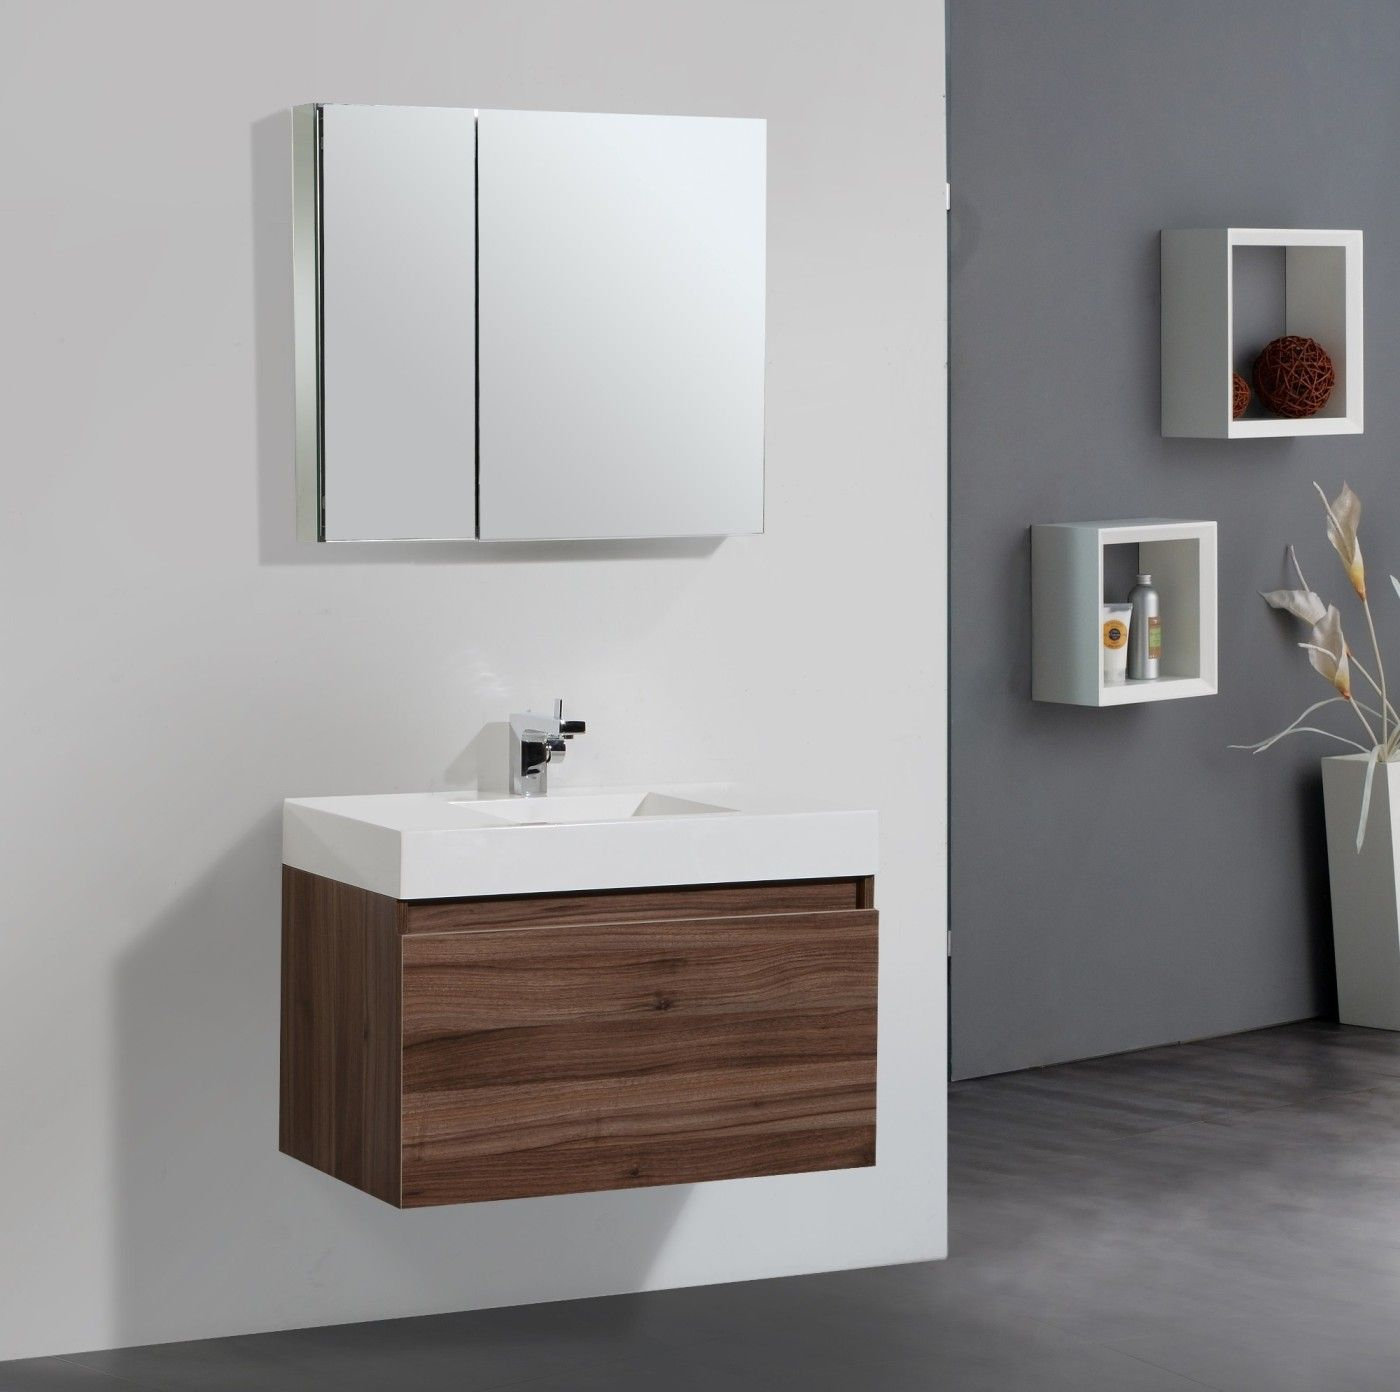 Hanging Bathroom Sink Cabinets | Bathroom sink cabinets: what to ...